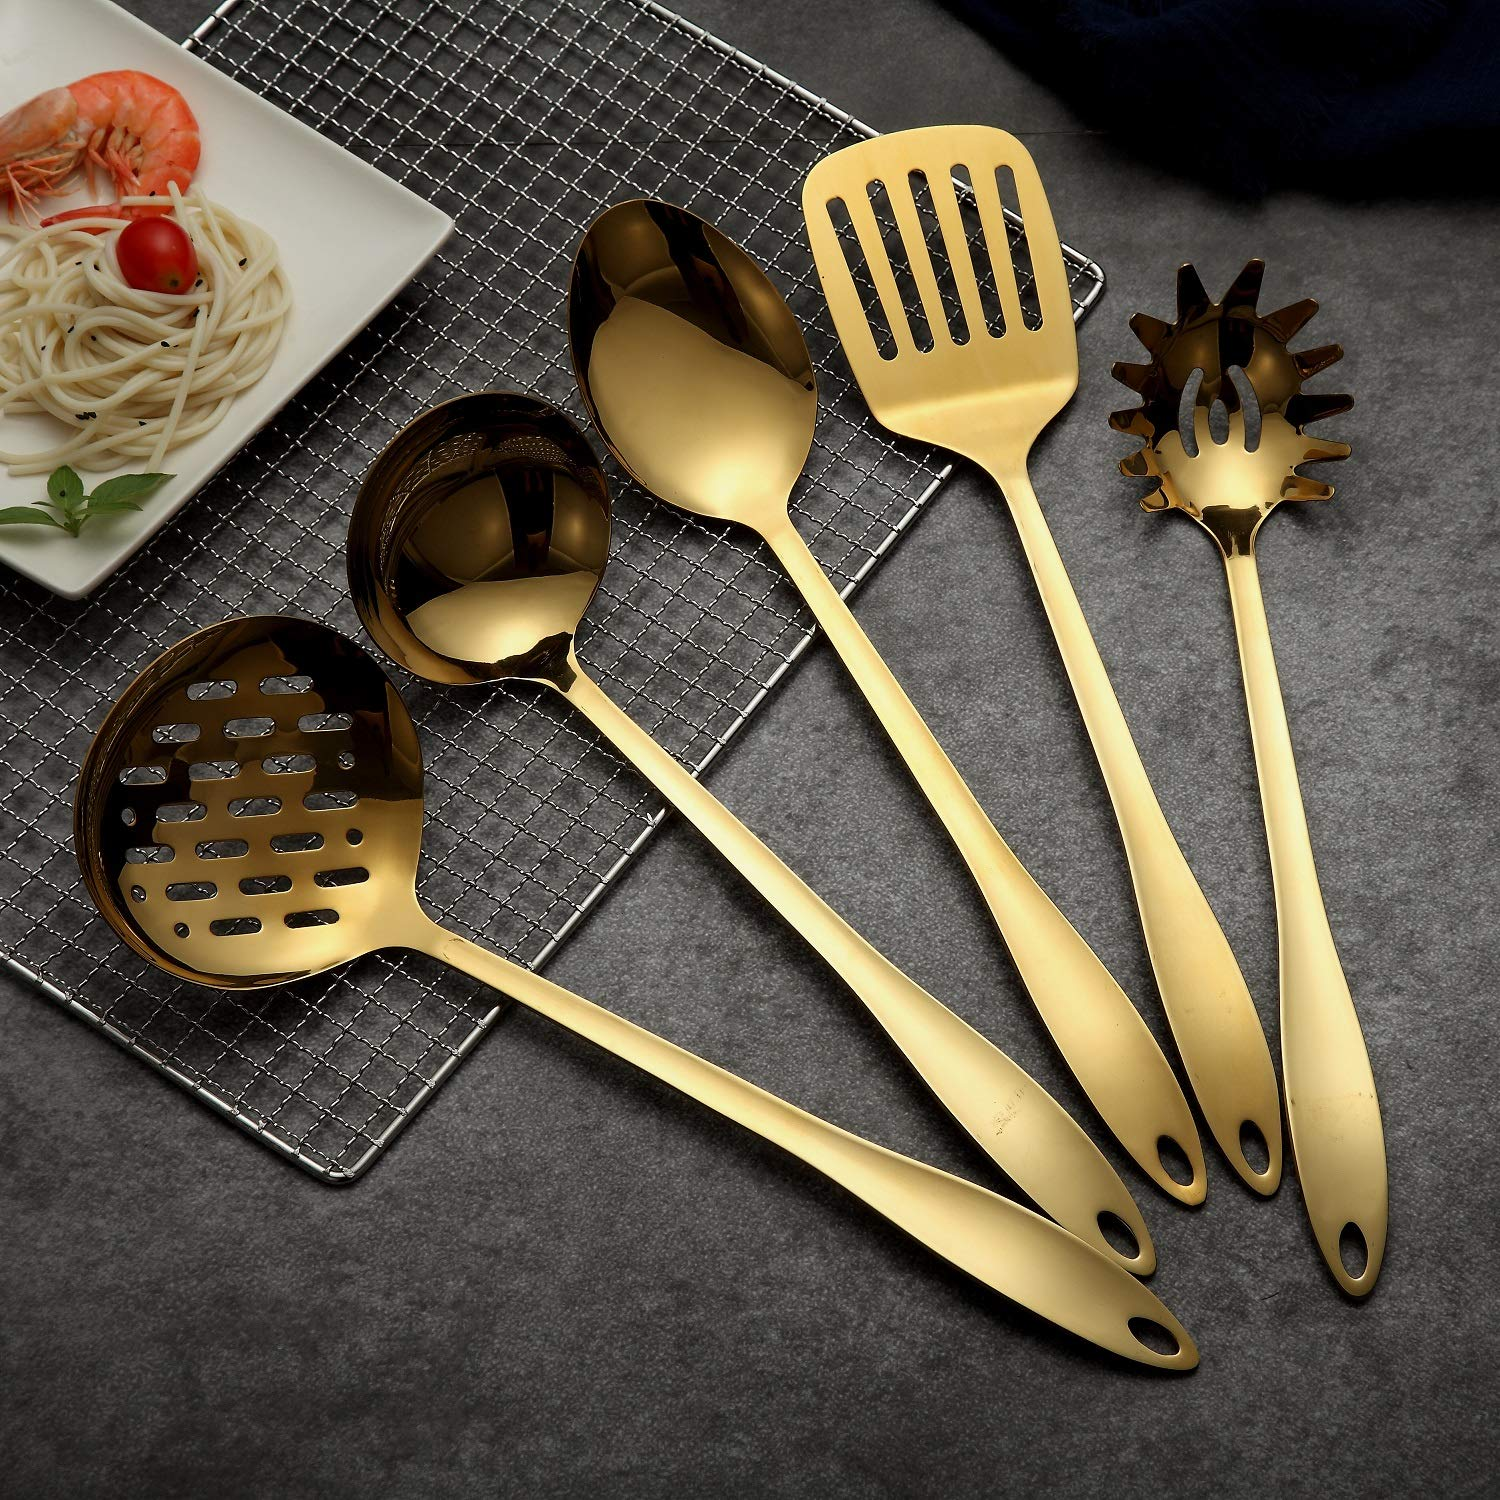 HOMQUEN Stainless Steel Kitchen Utensil Set - Gold 5 Cooking Utensils, Nonstick Kitchen Utensils Set, Include Slotted Turner, Soup Ladle, Spoon, Skimmers, Pasta Server BERGLAND KT108G-5P